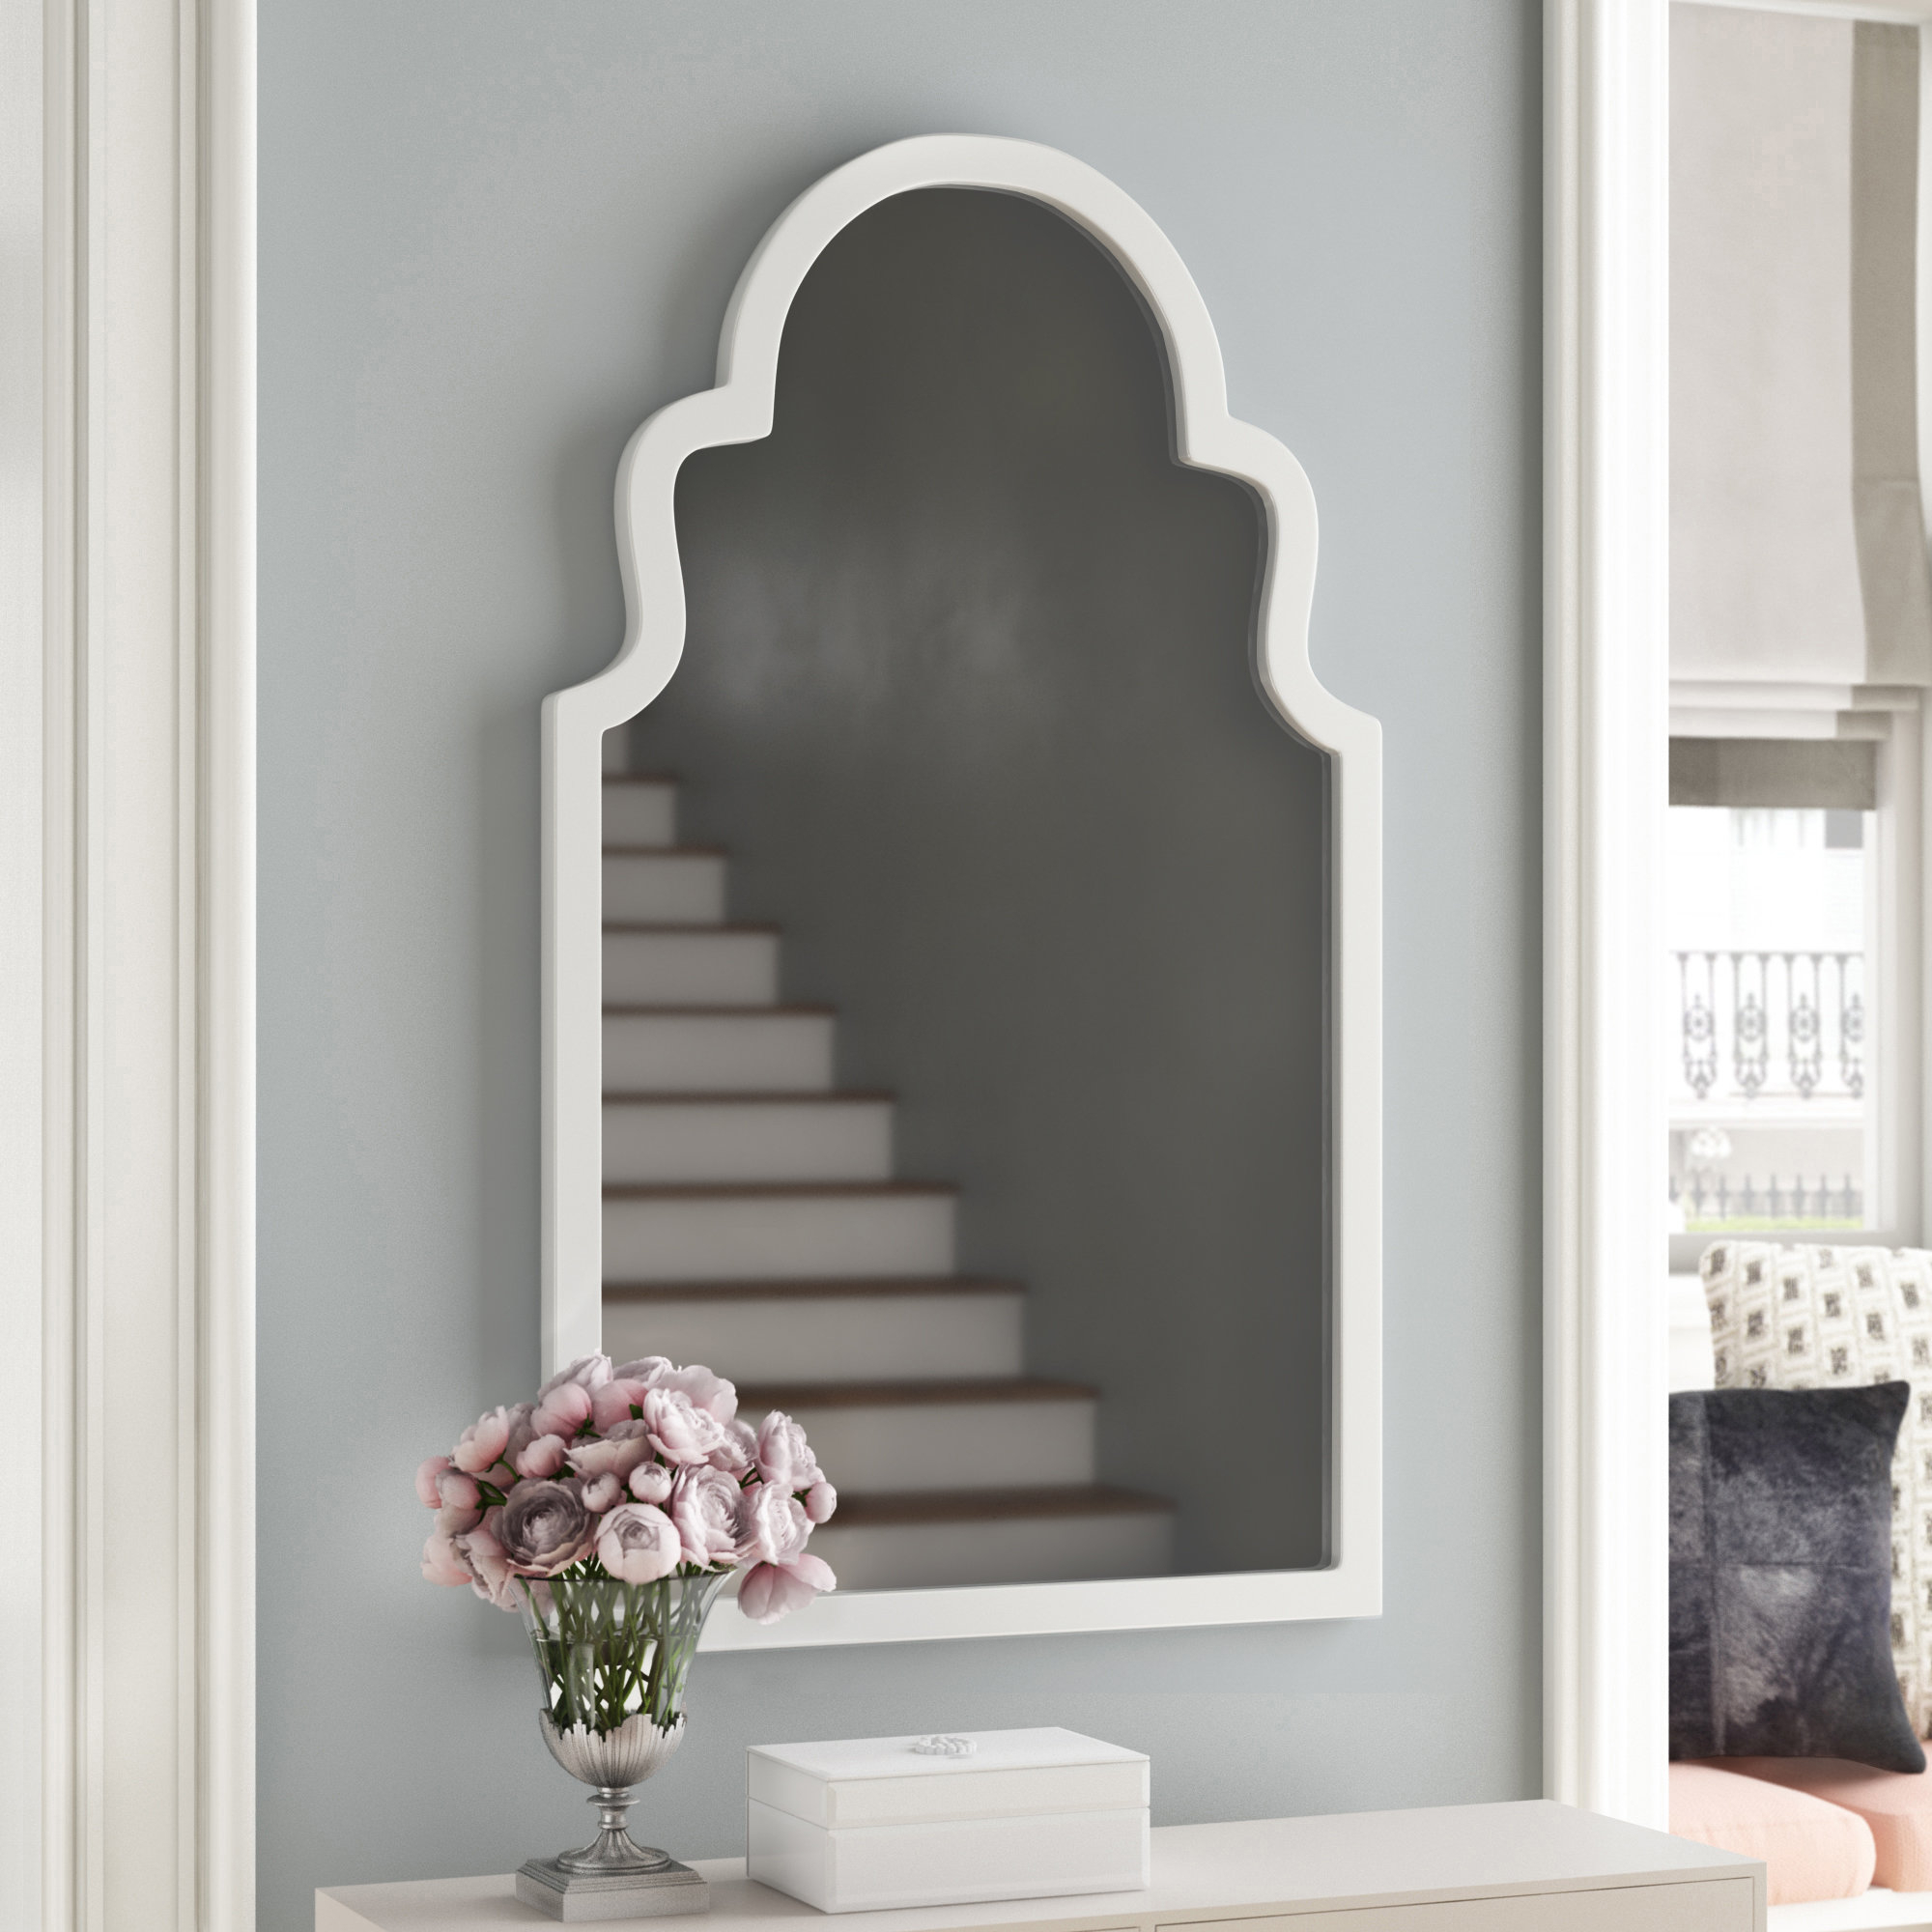 Willa Arlo Interiors Arch Vertical Wall Mirror & Reviews Intended For Fifi Contemporary Arch Wall Mirrors (View 27 of 30)